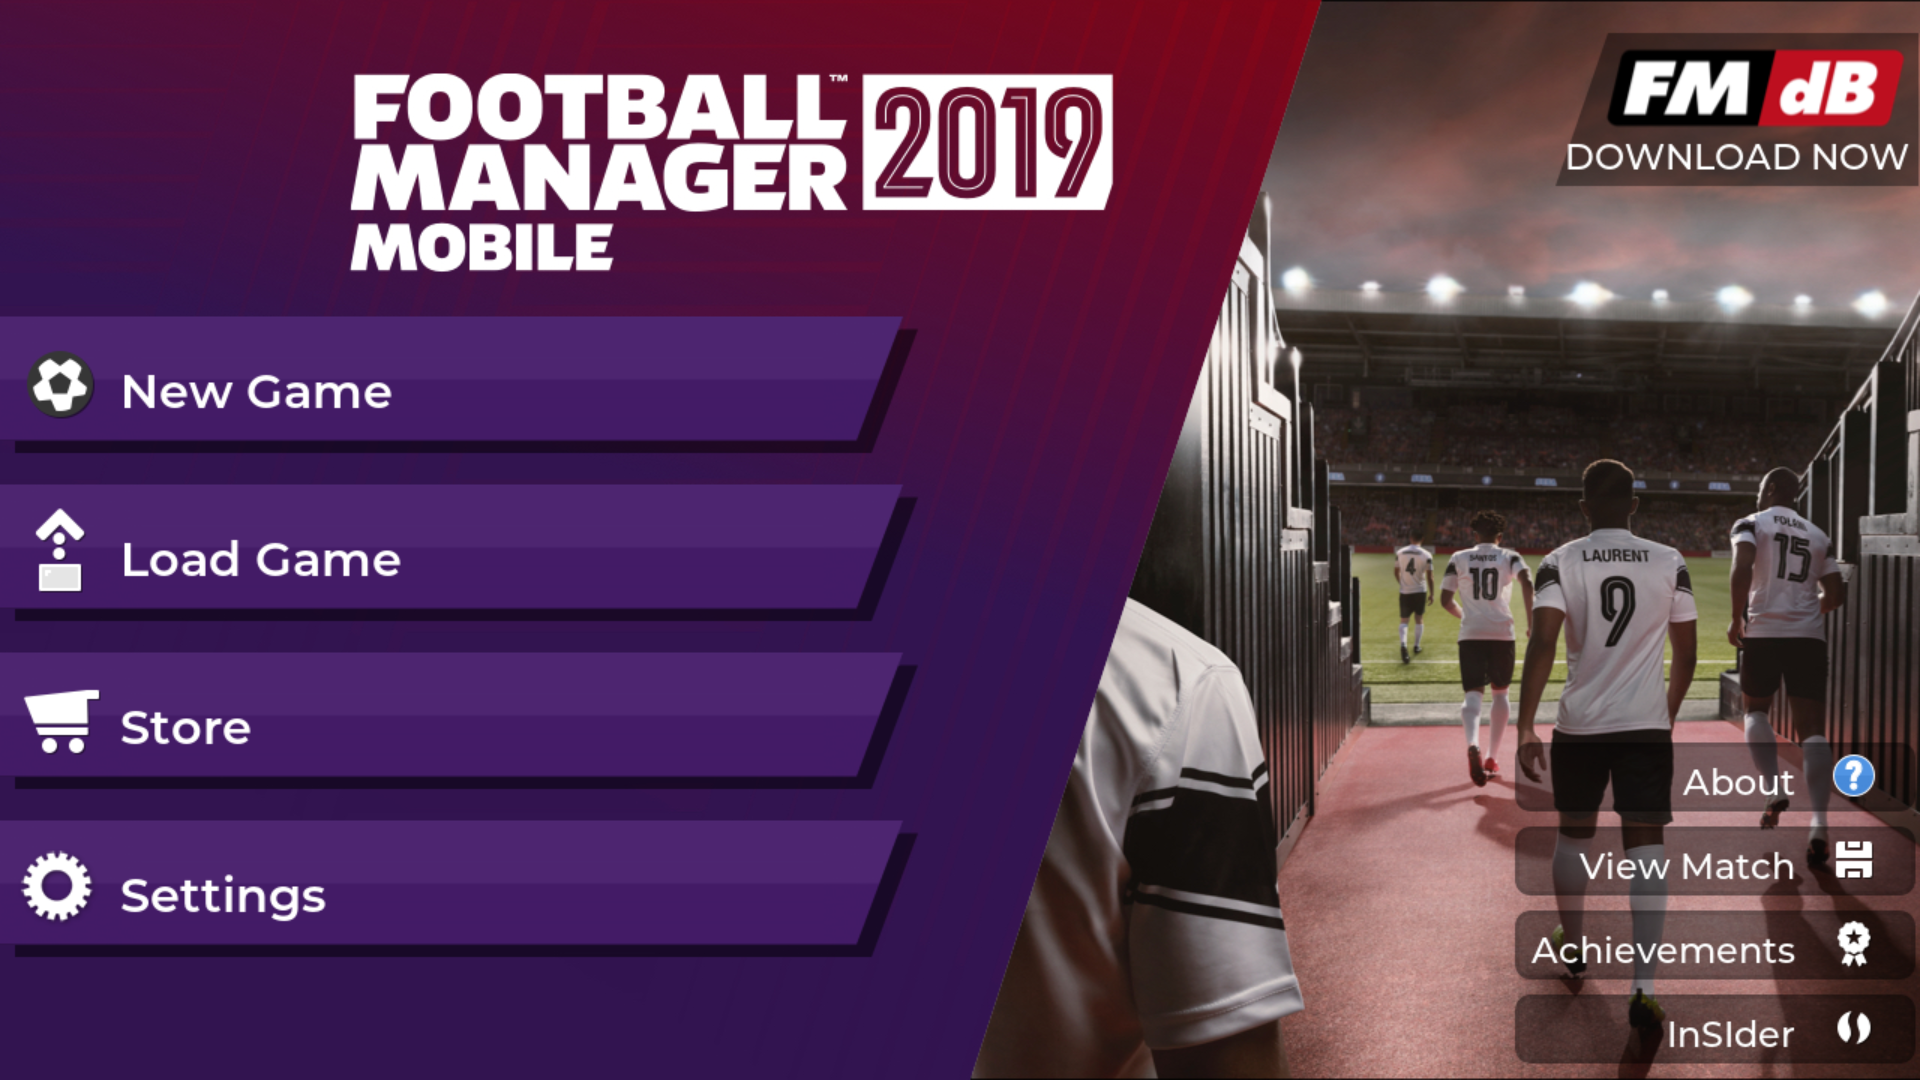 MS Fonts - FMM 2019 - Football Manager 2019 Mobile - FMM Vibe